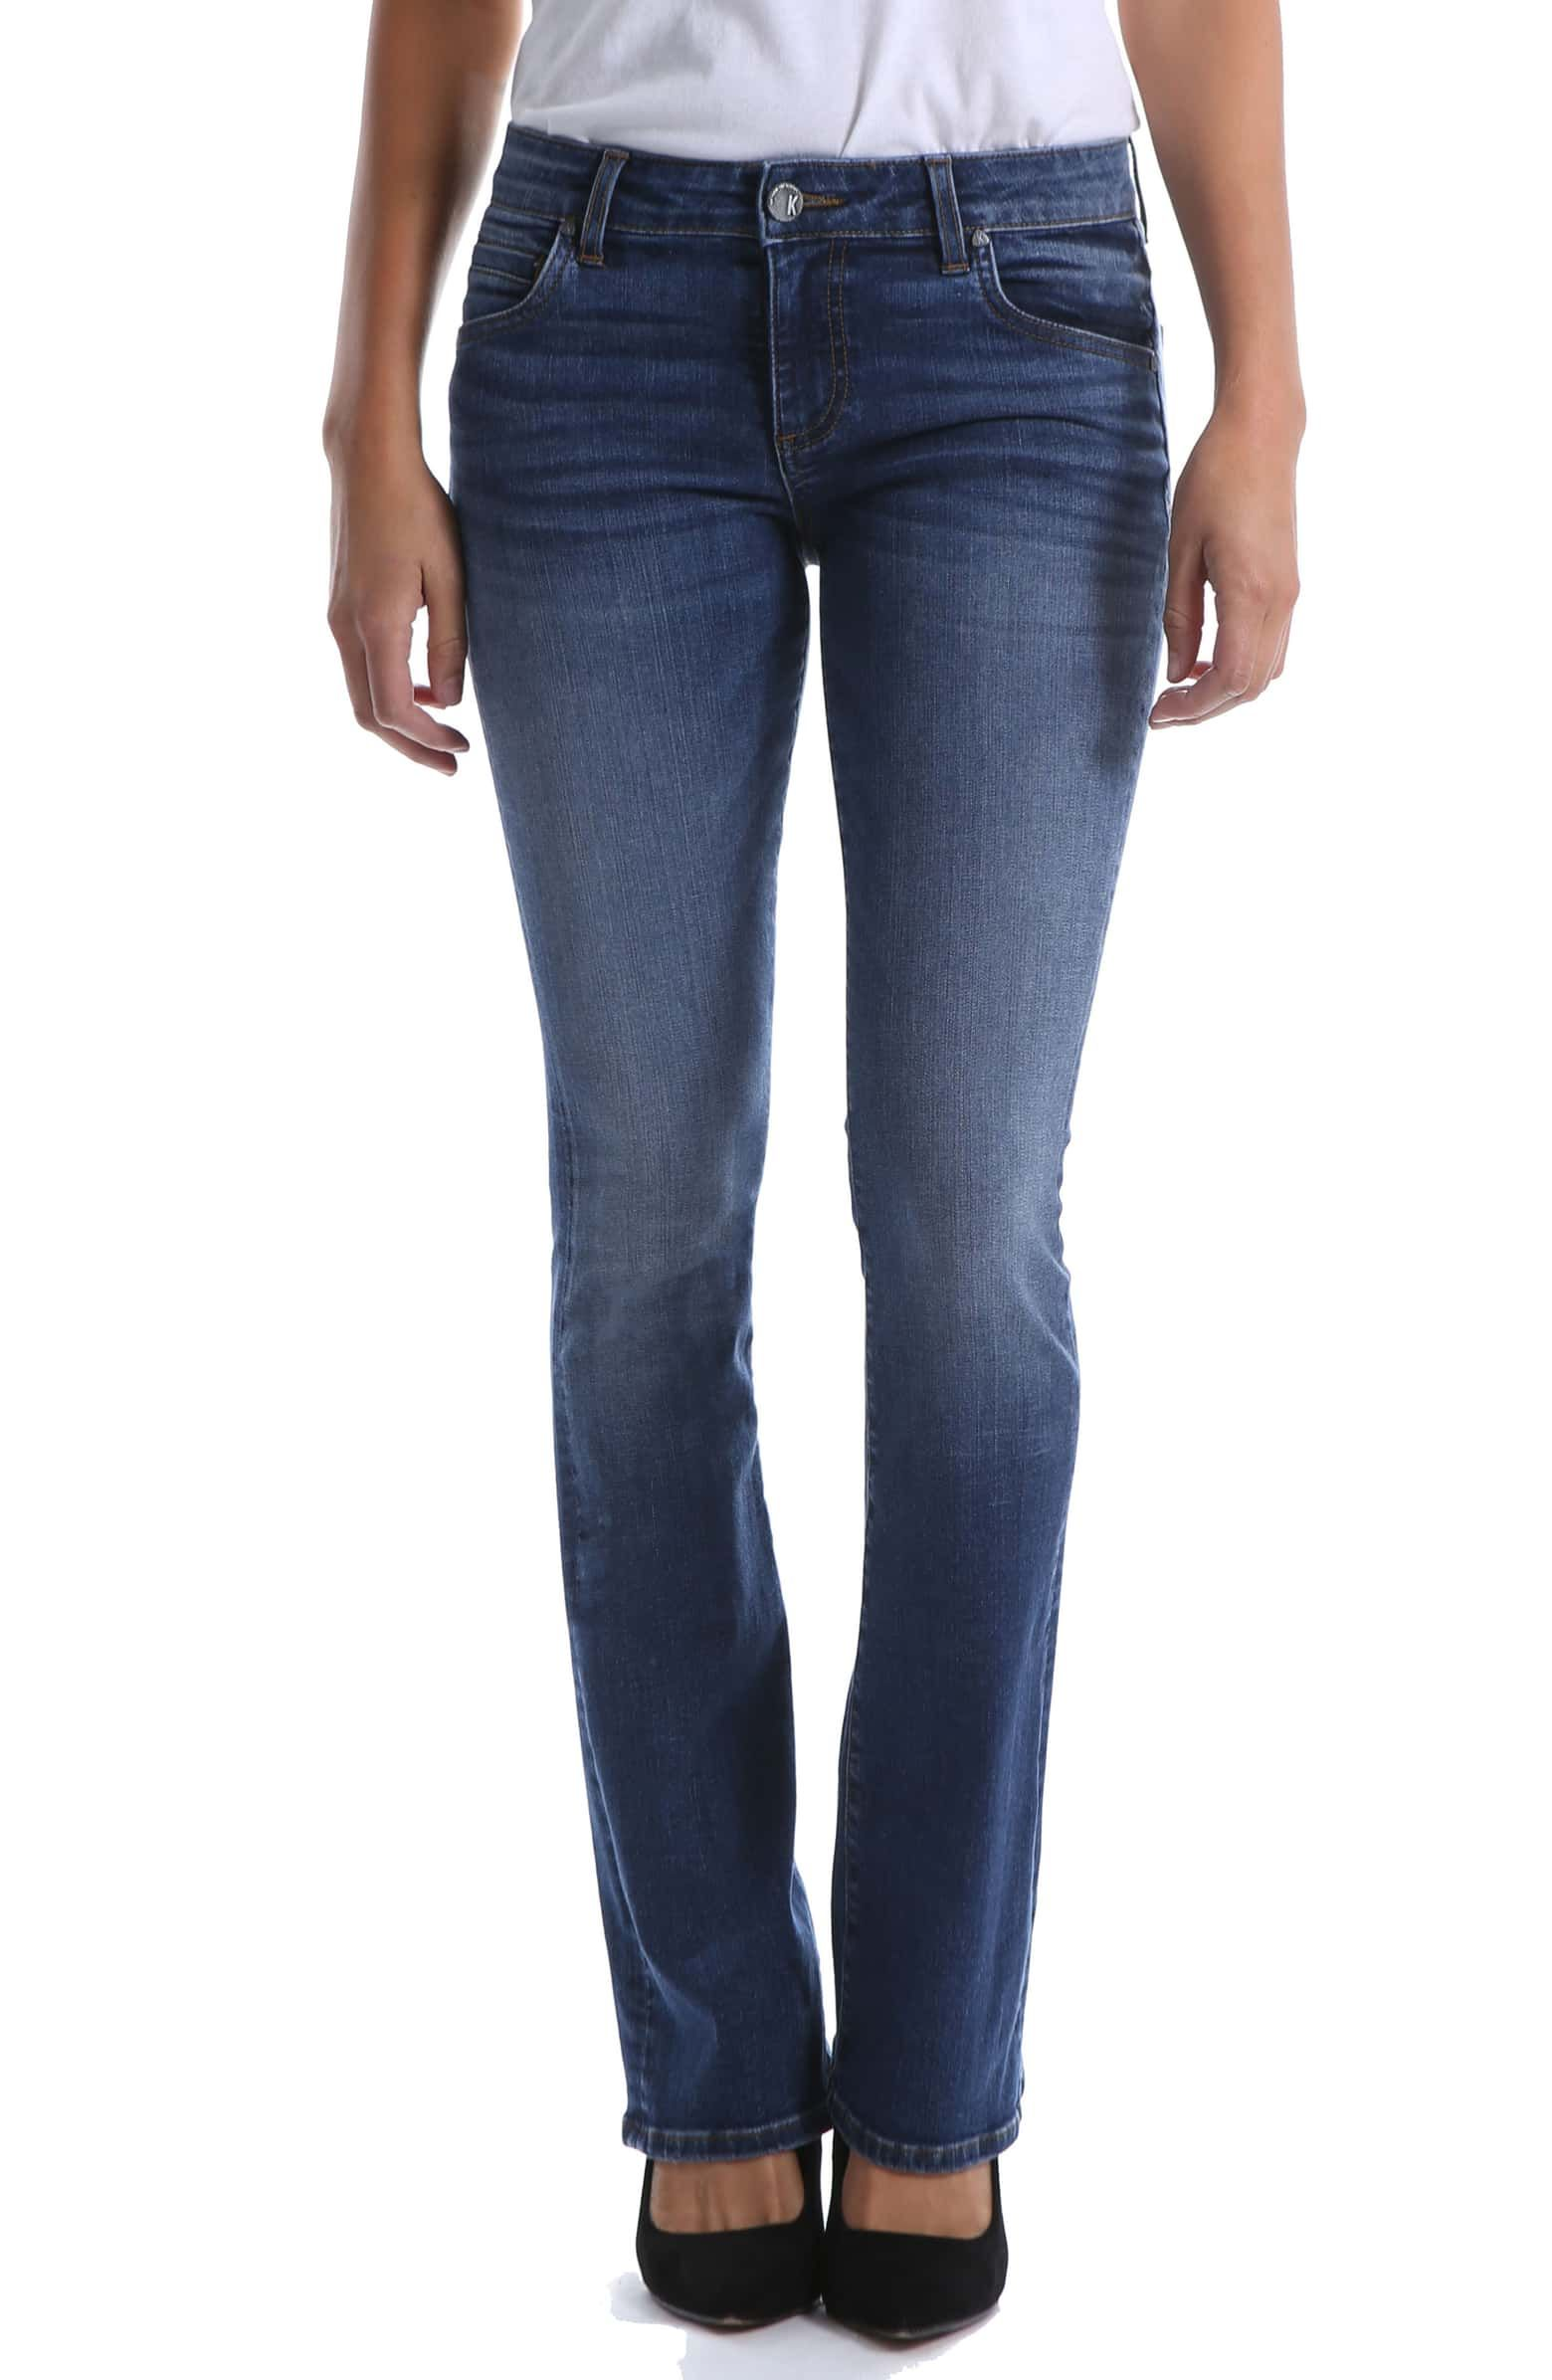 Kut From The Kloth Natalie Flare Jeans Fellowship With Images Bootleg Jeans Flare Jeans Nordstrom Jeans